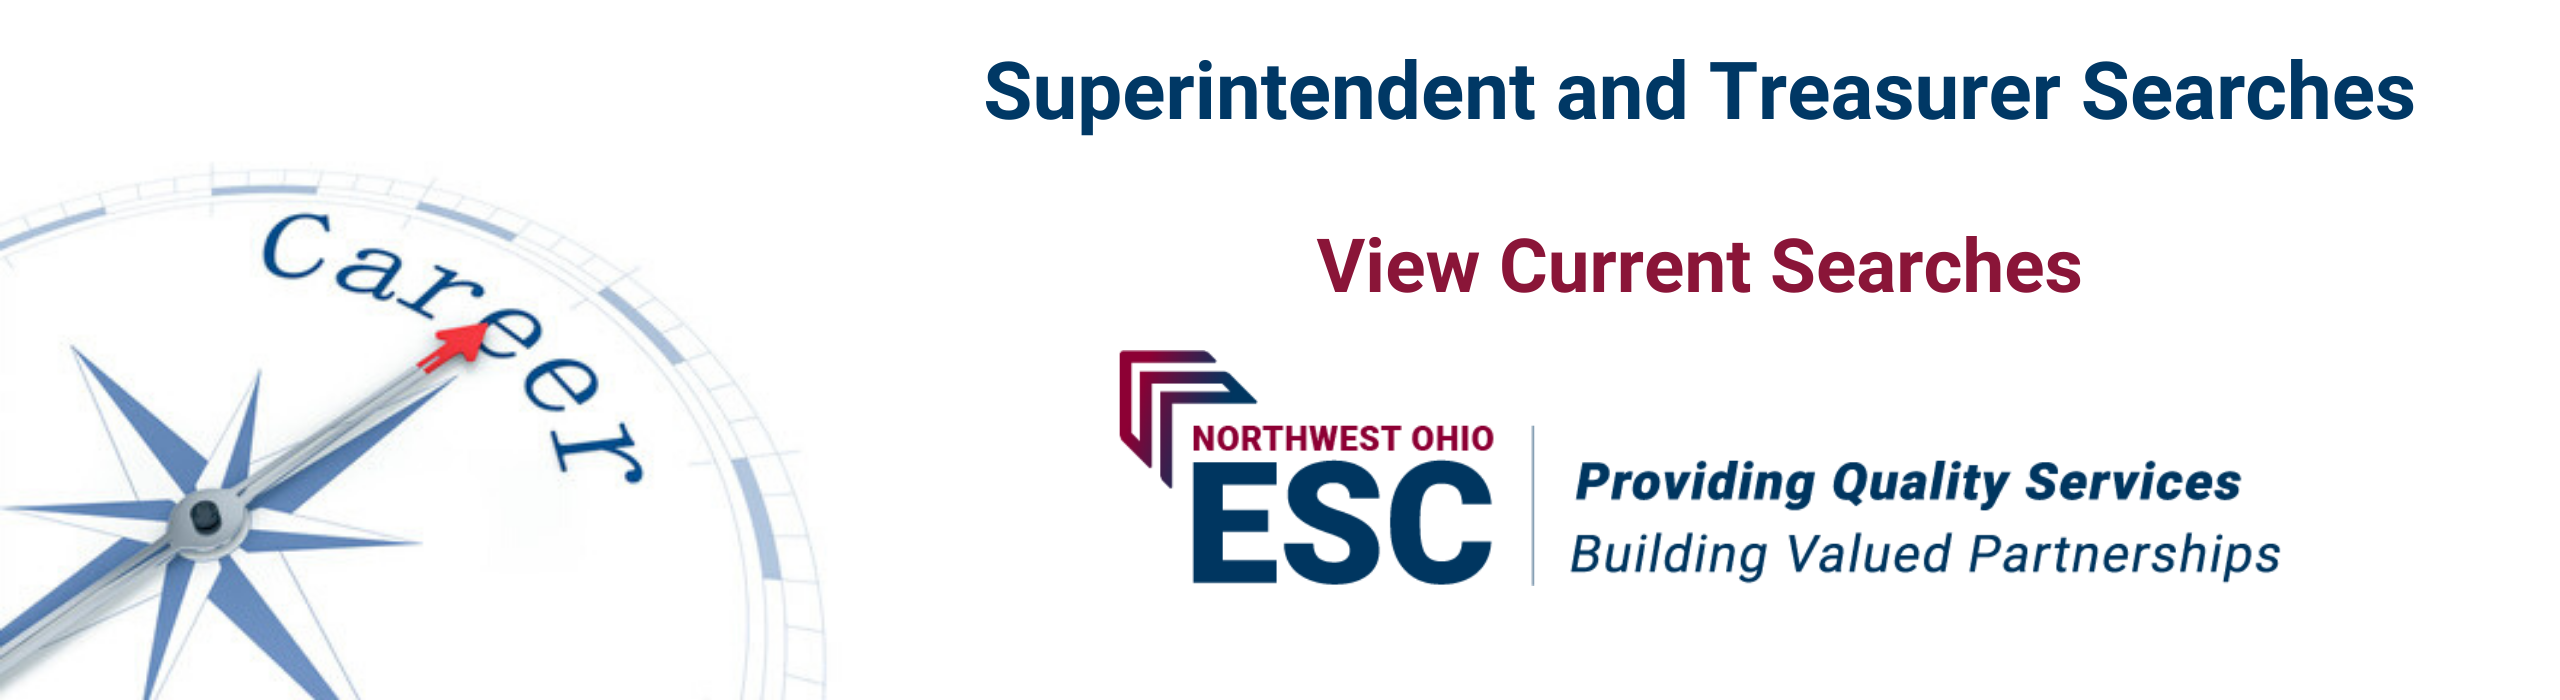 Superintendent and Treasurer Searches - View Current Searches